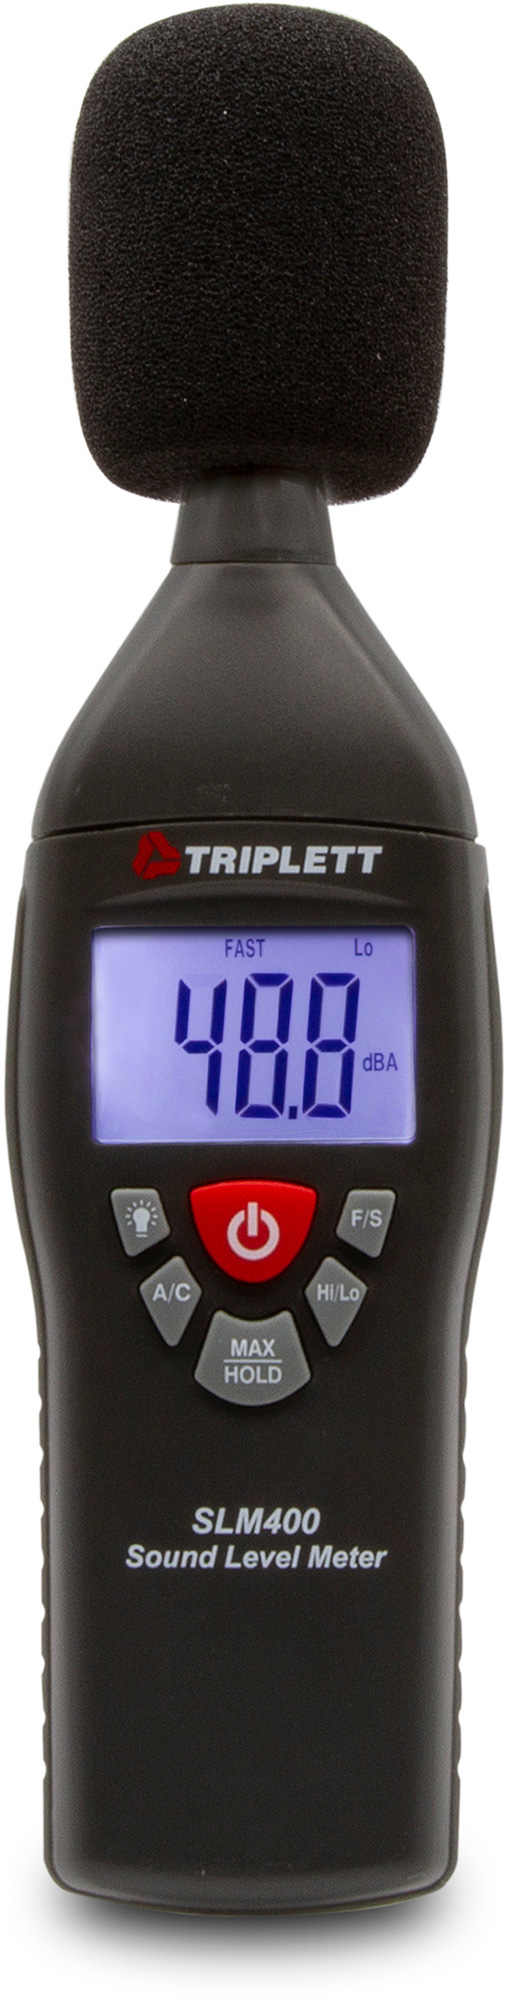 Triplett SLM400-NIST Professional Type 2 Sound Level Meter with Certificate of Traceability to N.I.S.T. TRIPL-SLM400NIST